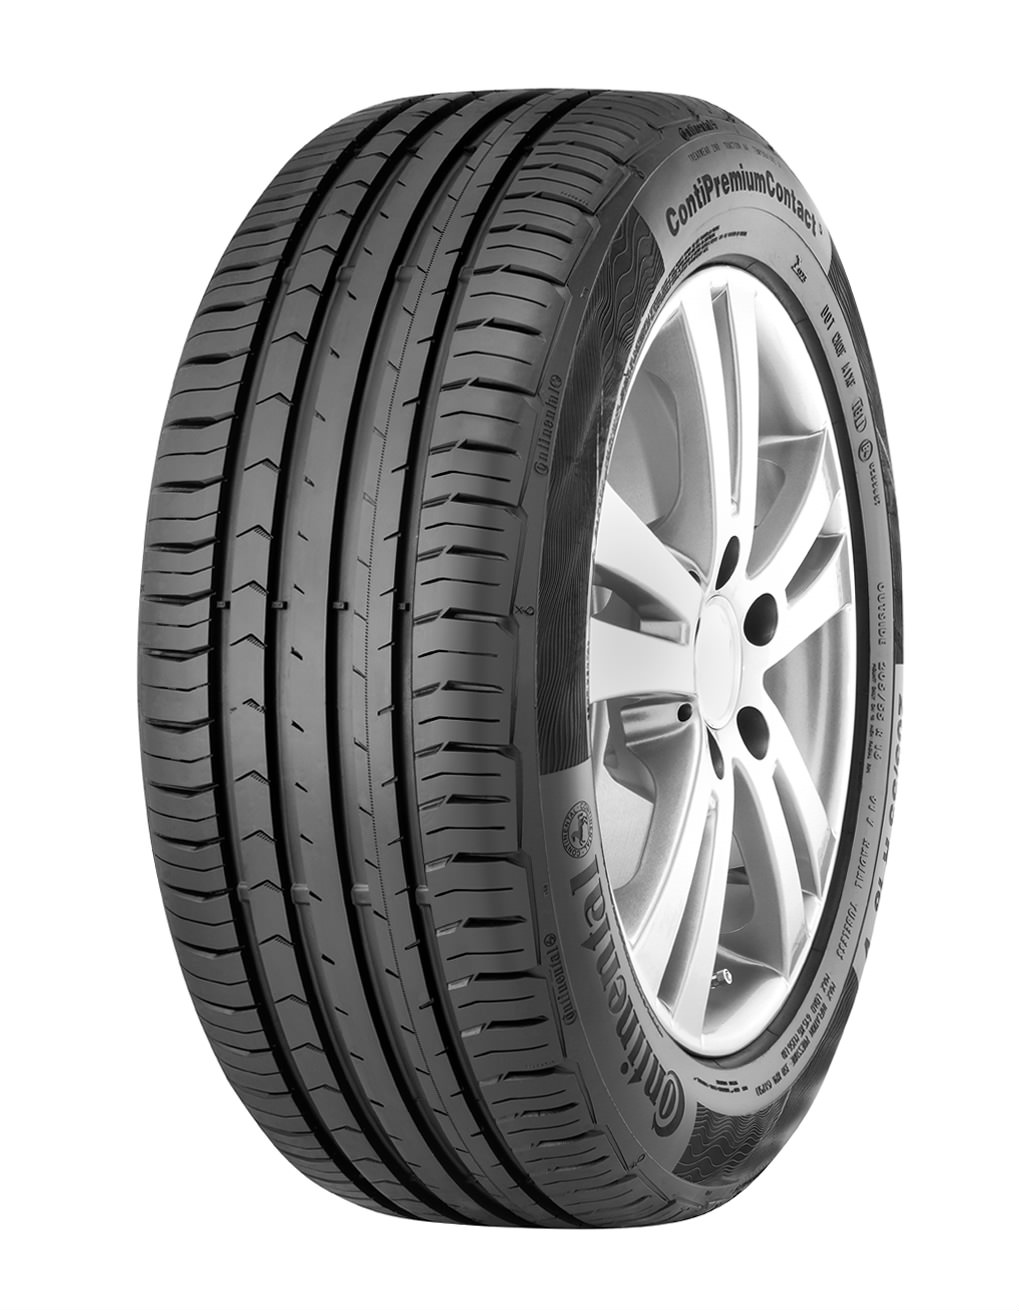 image of a continental car tyre